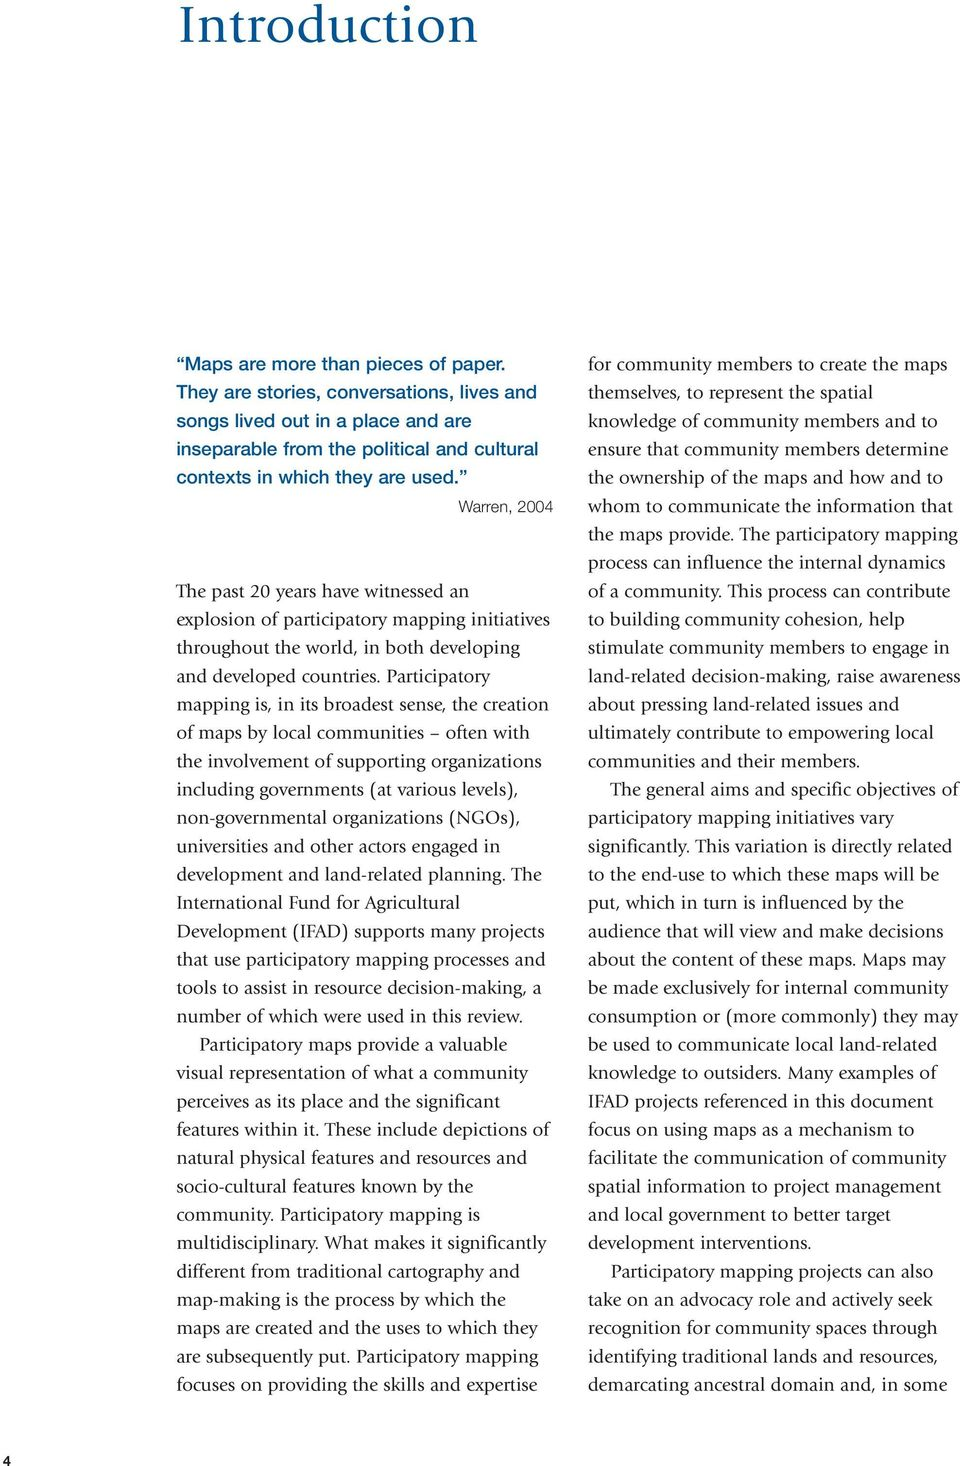 Warren, 2004 The past 20 years have witnessed an explosion of participatory mapping initiatives throughout the world, in both developing and developed countries.